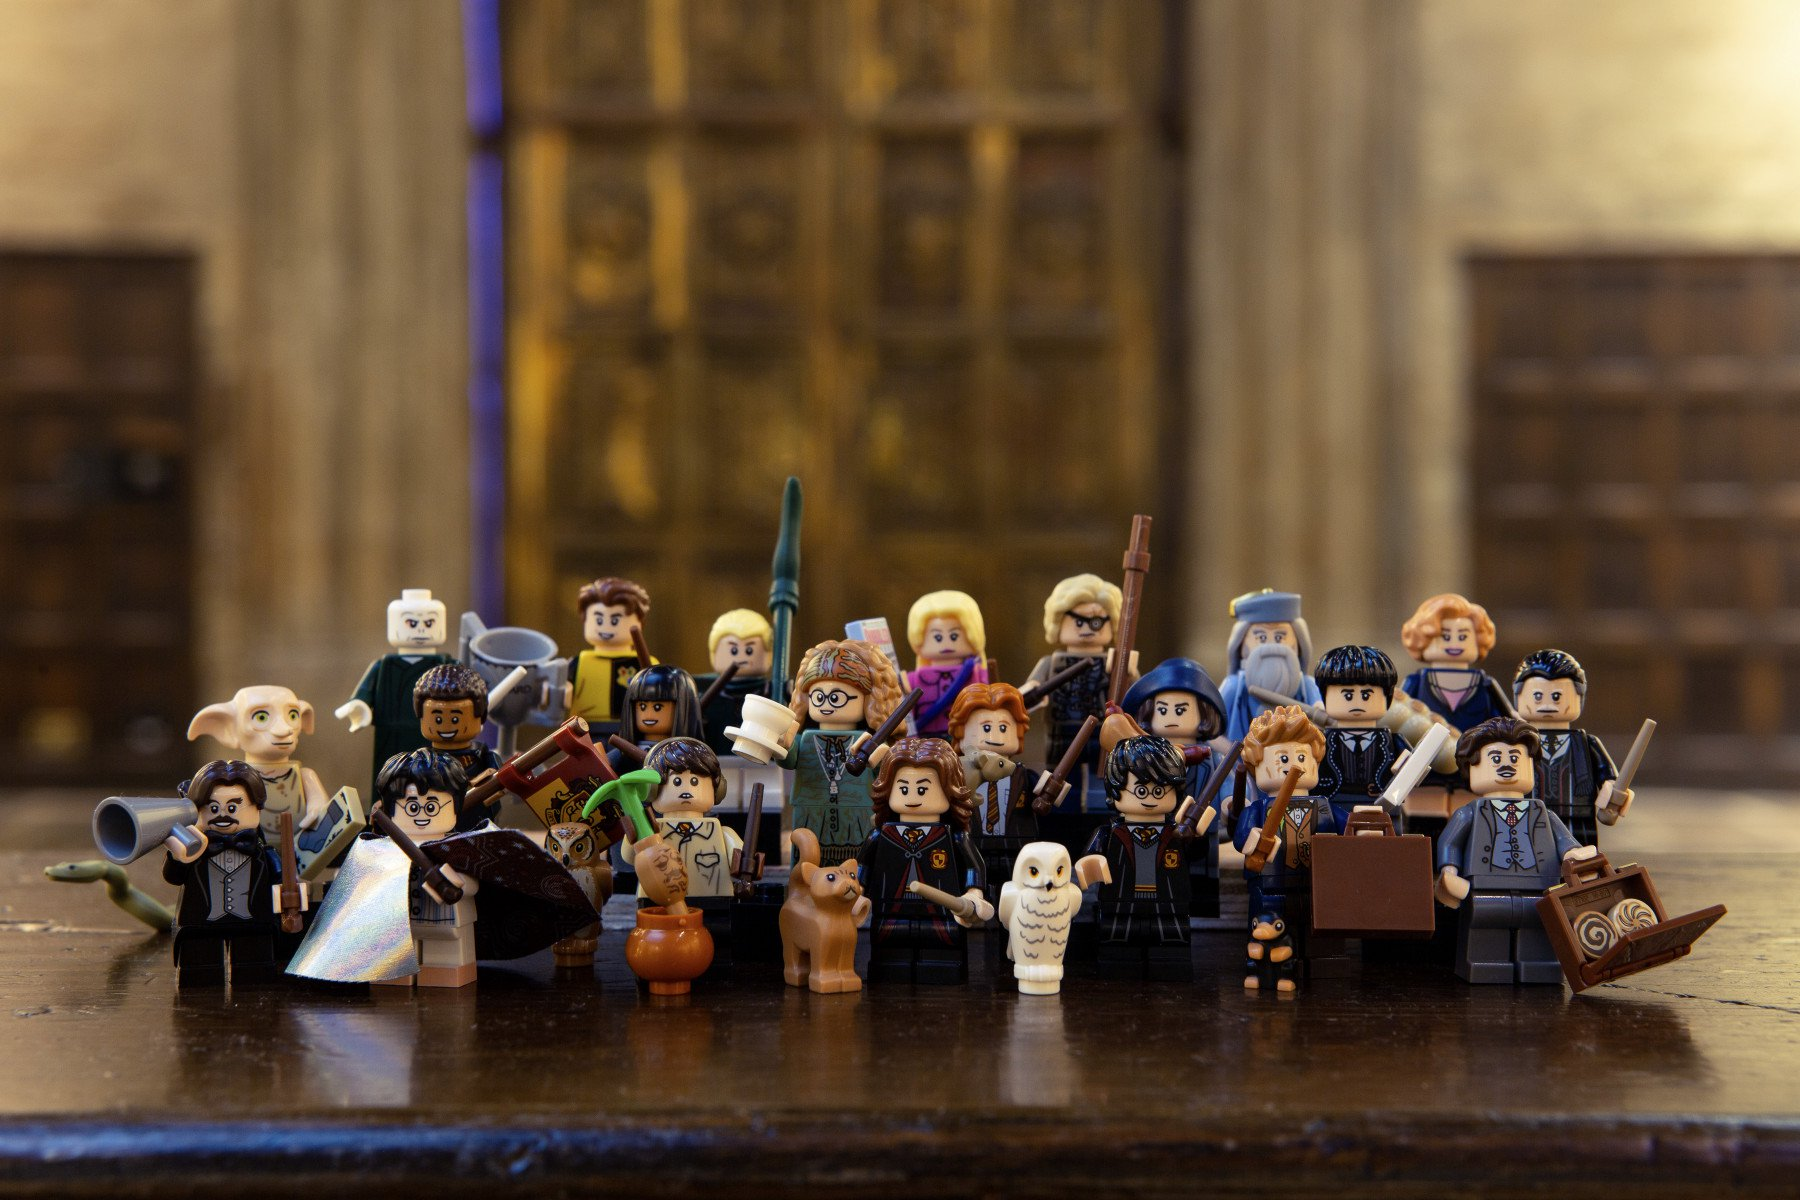 [LEGO] : MINIFIGS COLLECTION - Page 14 LEGO-Harry-Potter-71022-Collectible-Minifigures-1